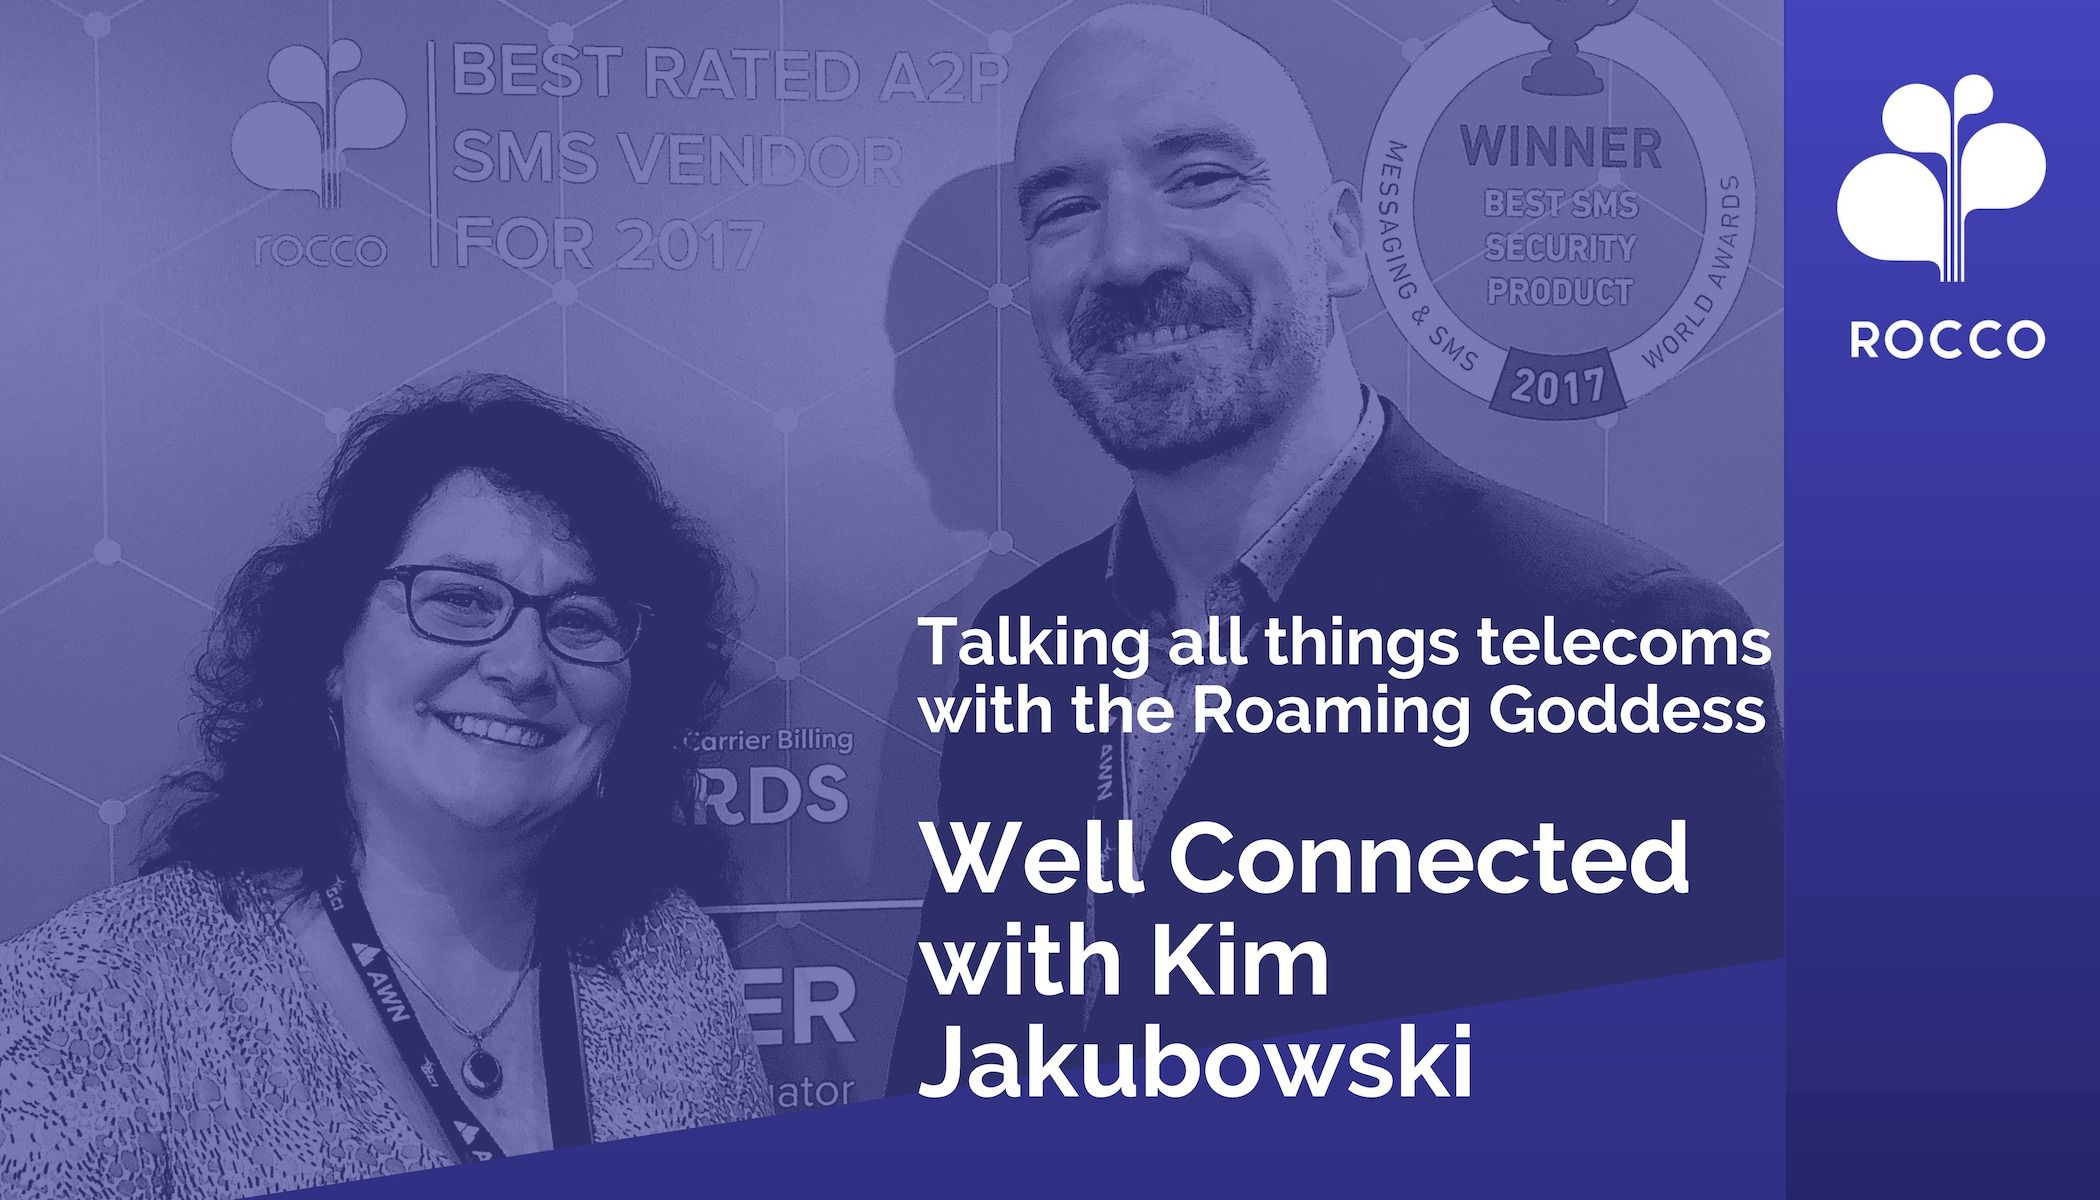 WELL CONNECTED WITH KIM JAKUBOWSKI